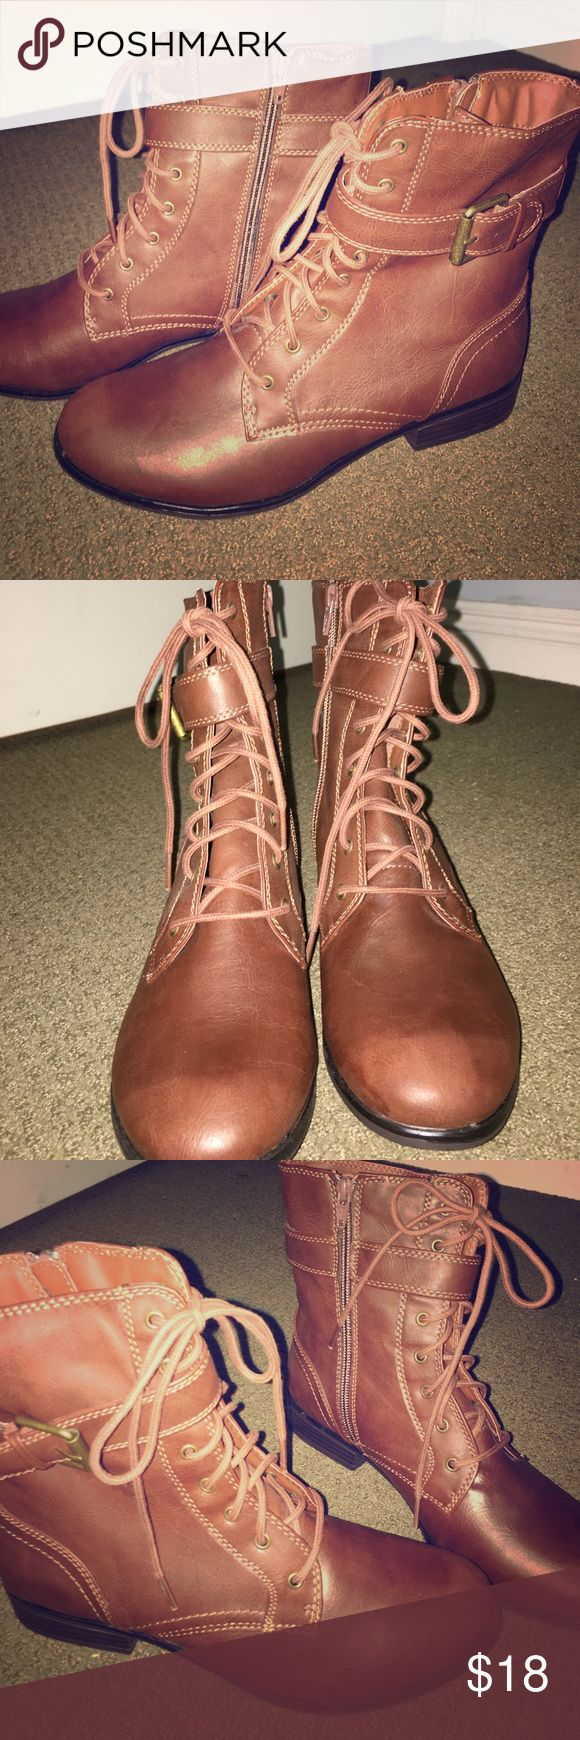 Women's Brown Combat Boots Brown lace-up combat boots for women. Ankle height. NEVER WORN. Size: 8. Shoes Combat & Moto Boots